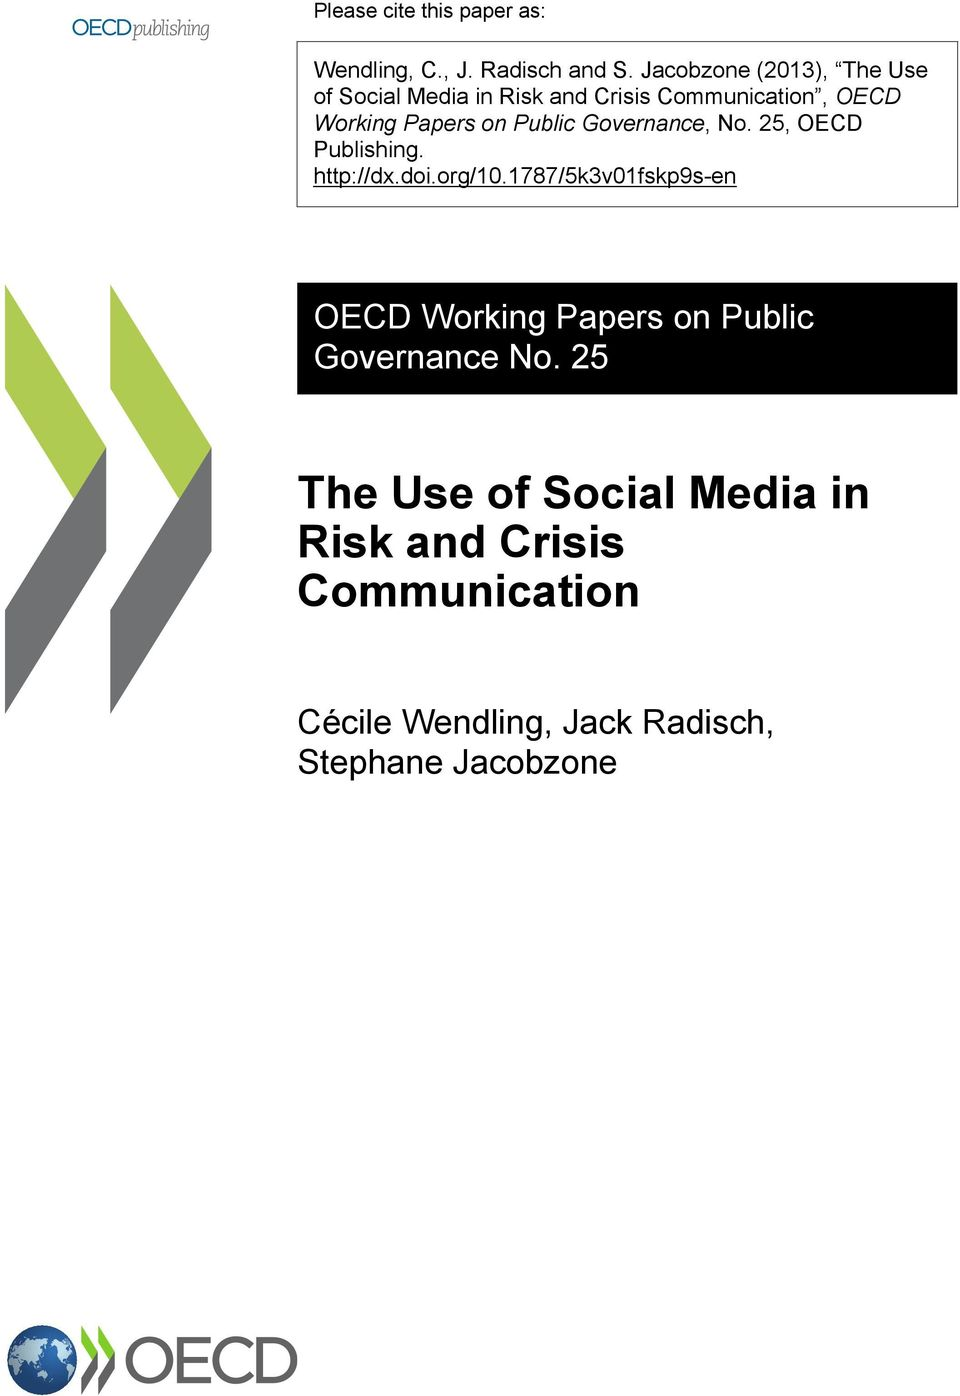 Public Governance, No. 25, OECD Publishing. http://dx.doi.org/10.